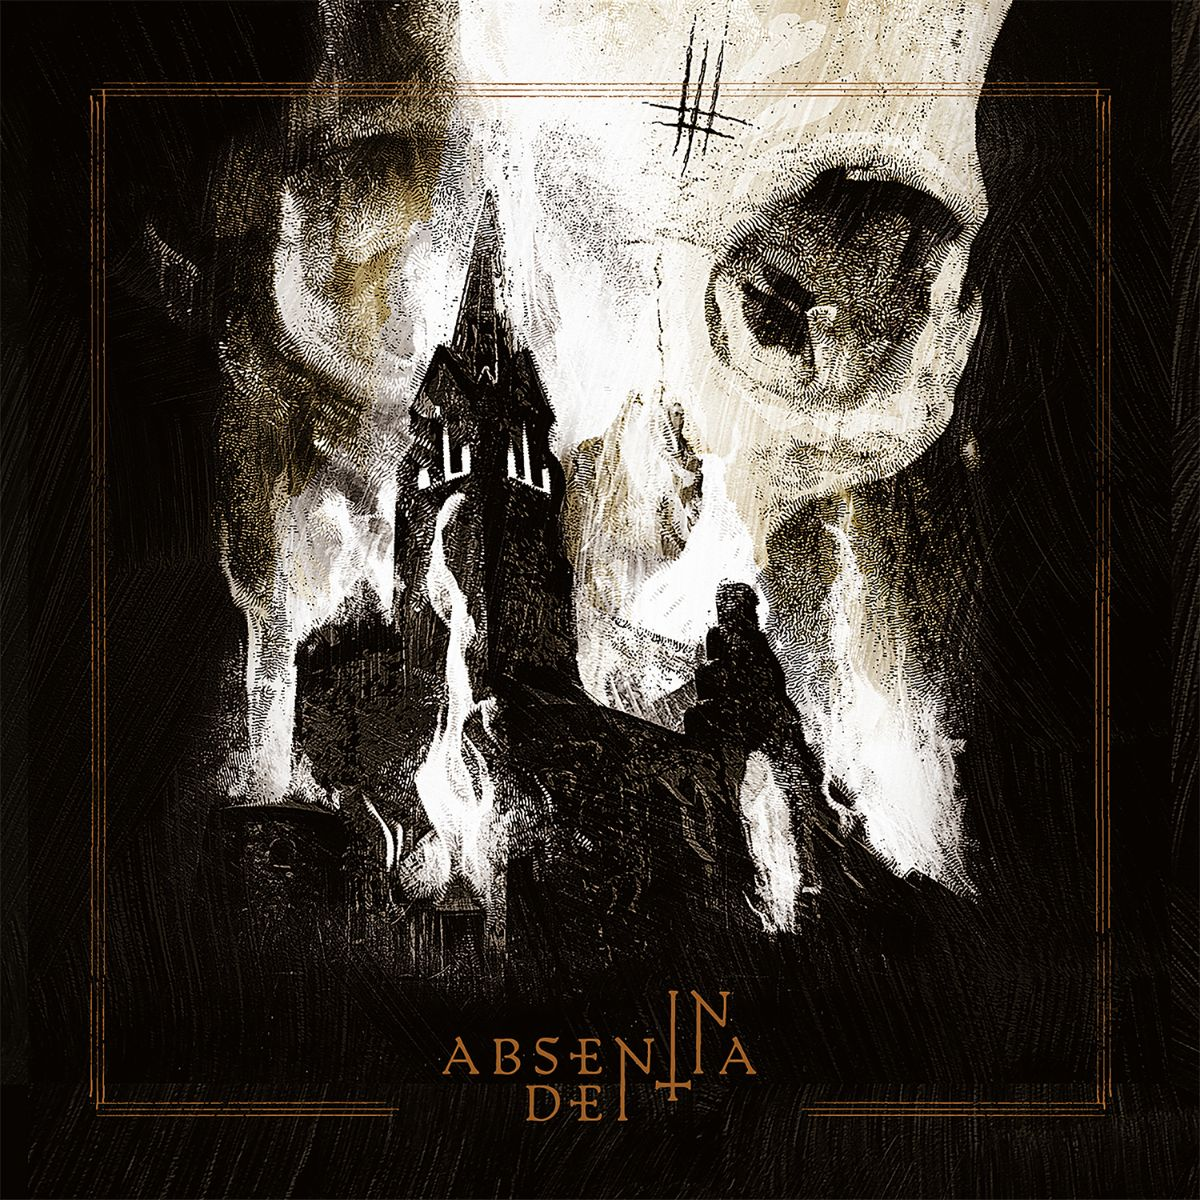 """Behemoth announces live release """"In Absentia Dei + first single """"Evoe"""" out today!"""